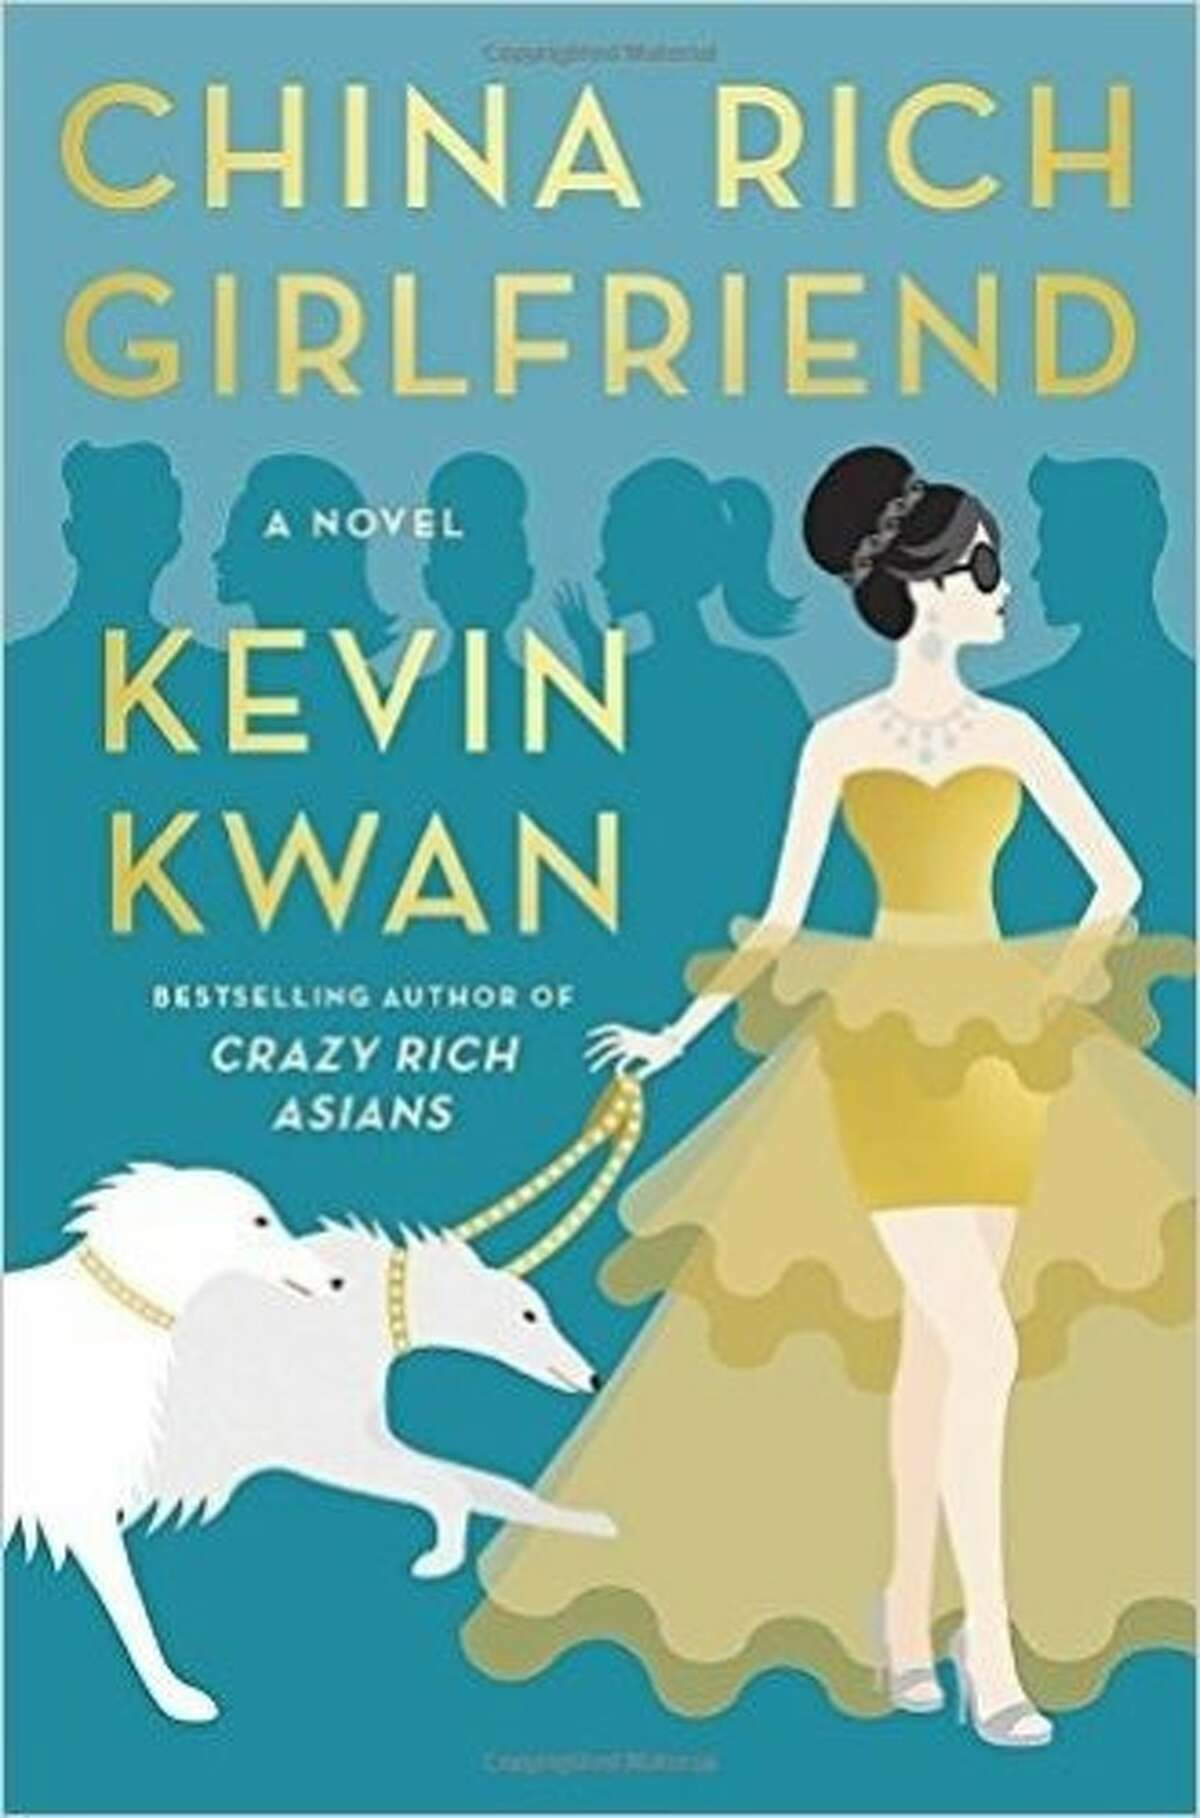 Kevin Kwan, author of